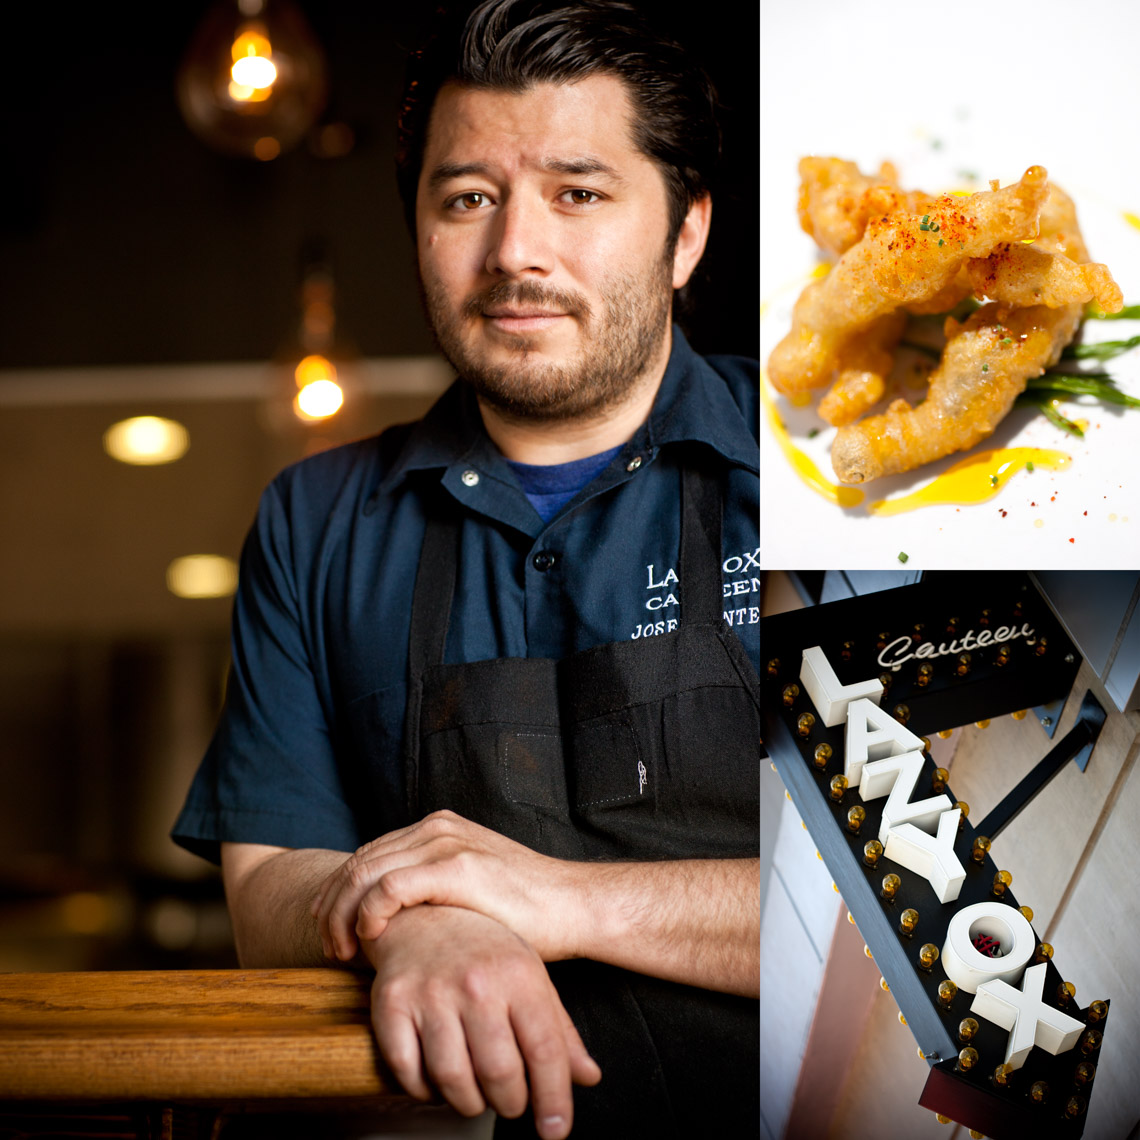 Los Angeles Photographer | Dana Hursey Photography | Top Chef Photography | Josef Centeno - Lazy Ox